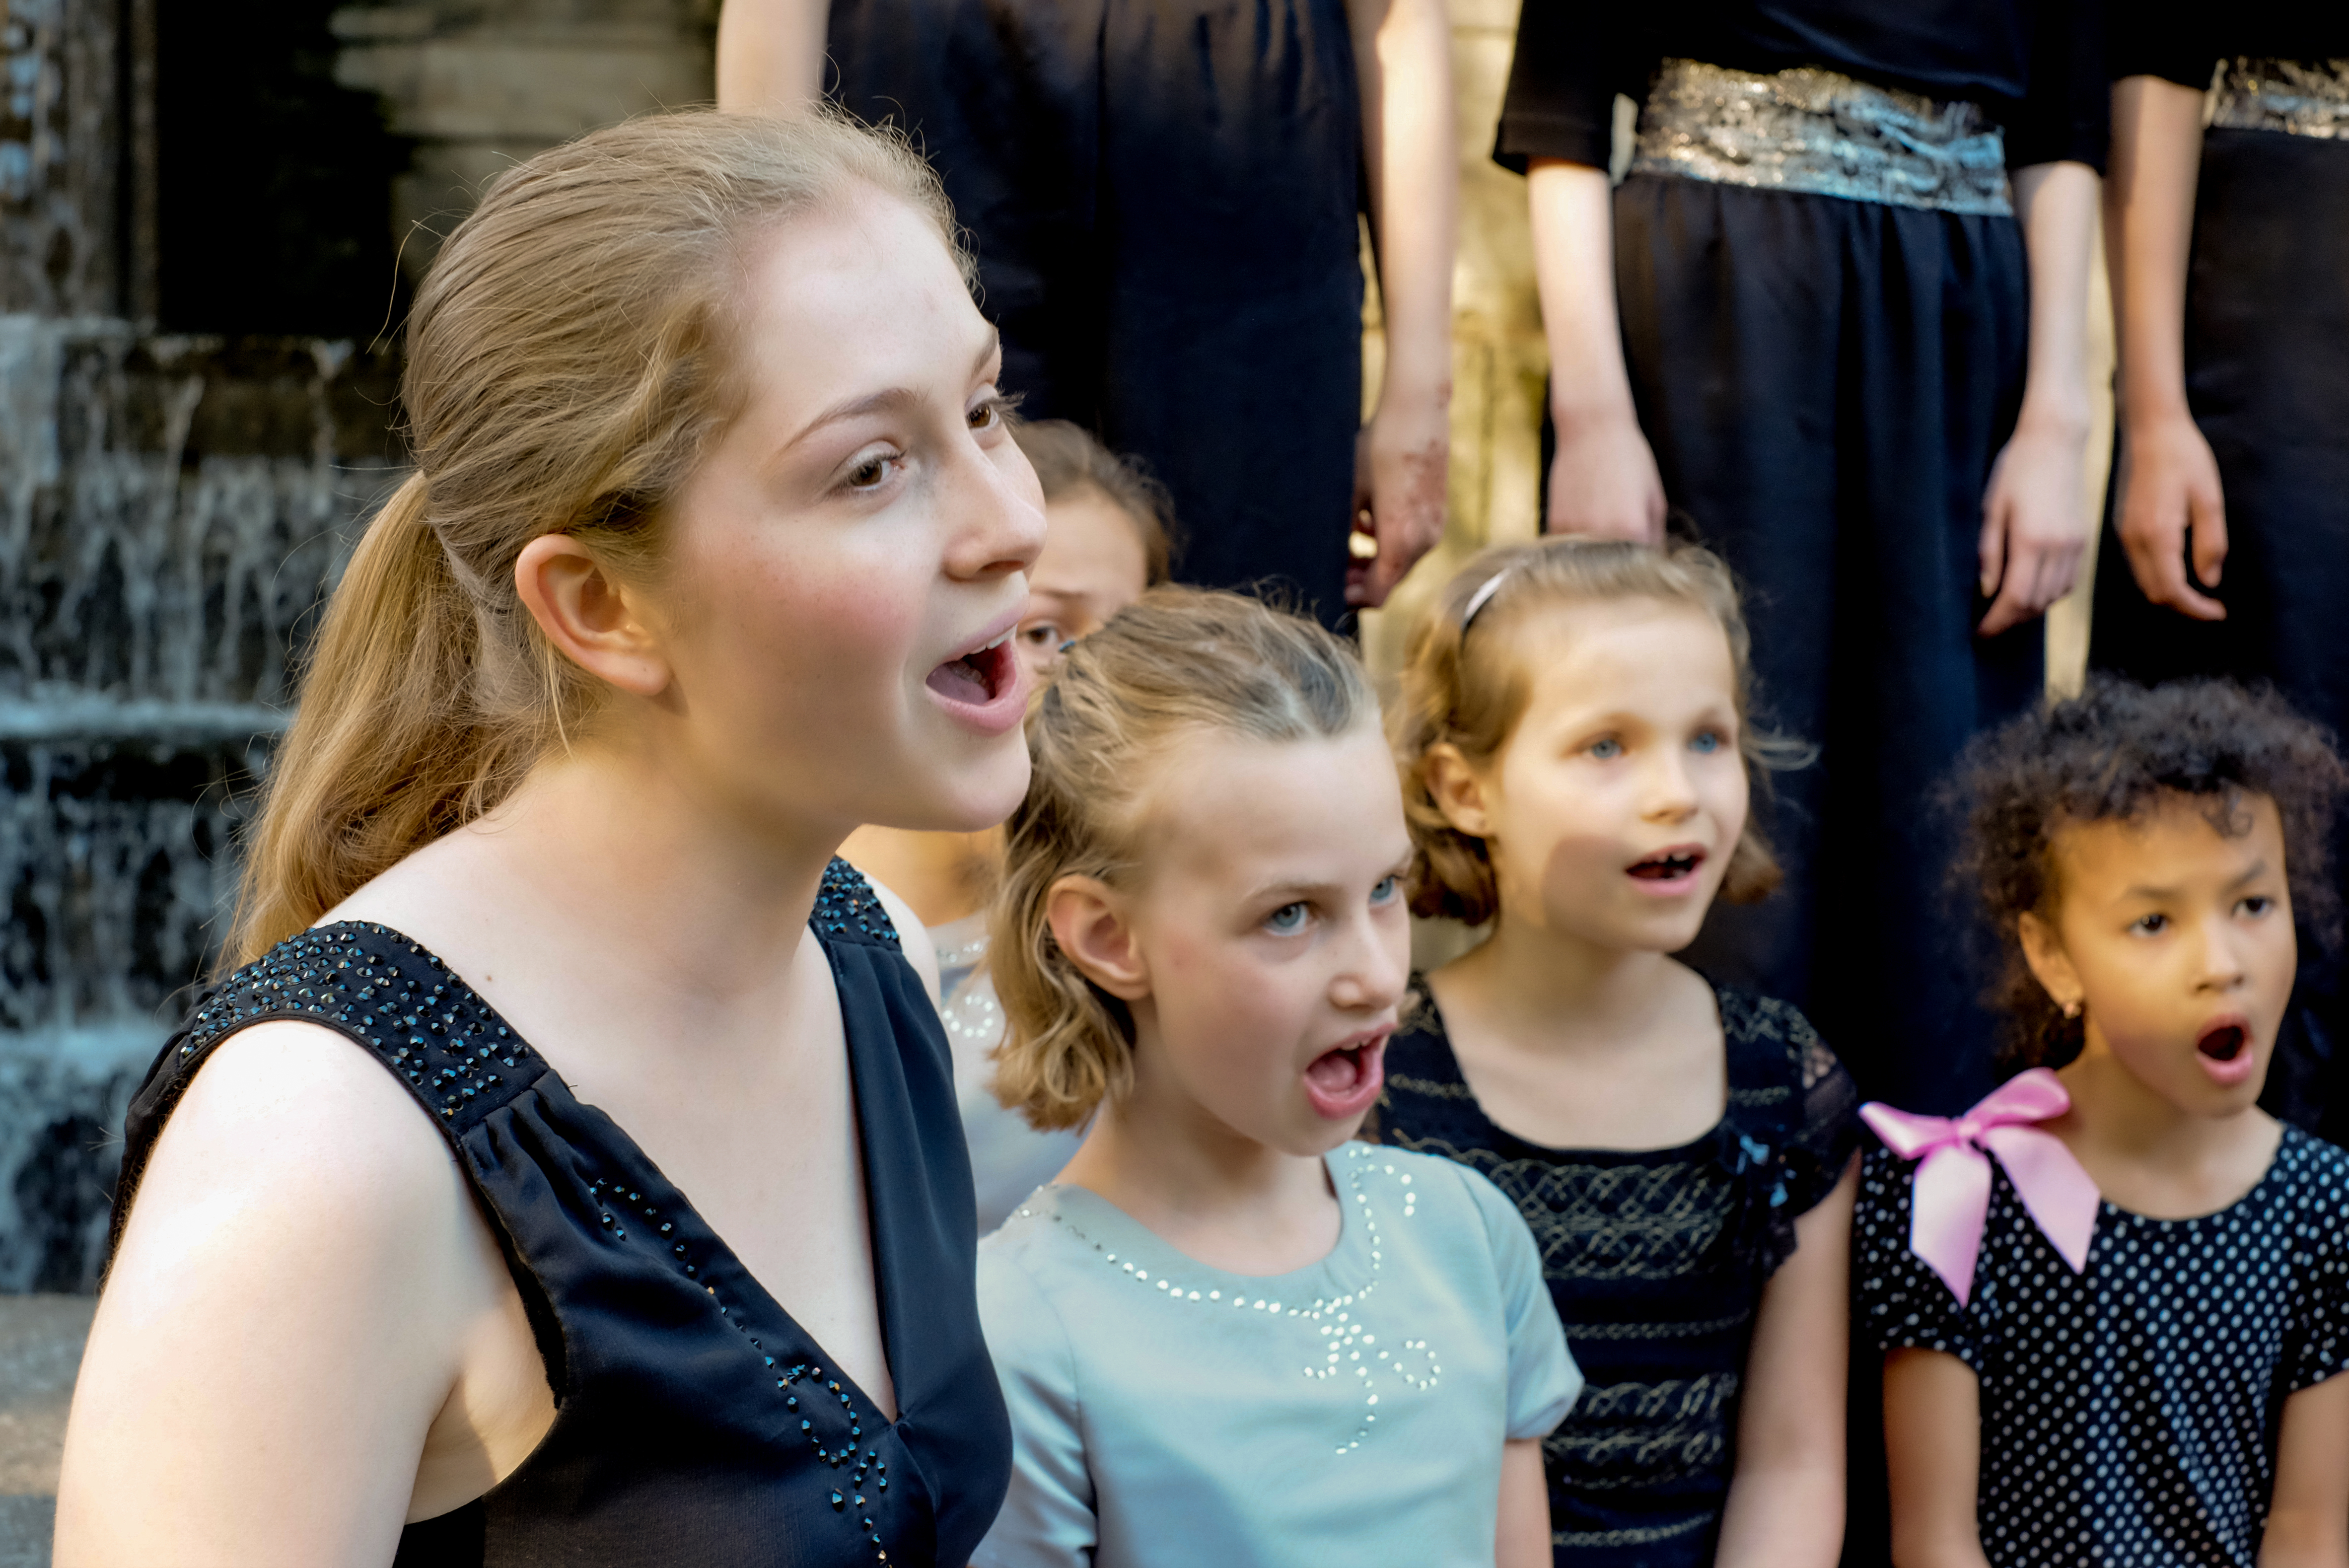 Northwest Girlchoir. Photo credit: Tricia Enfield Photography